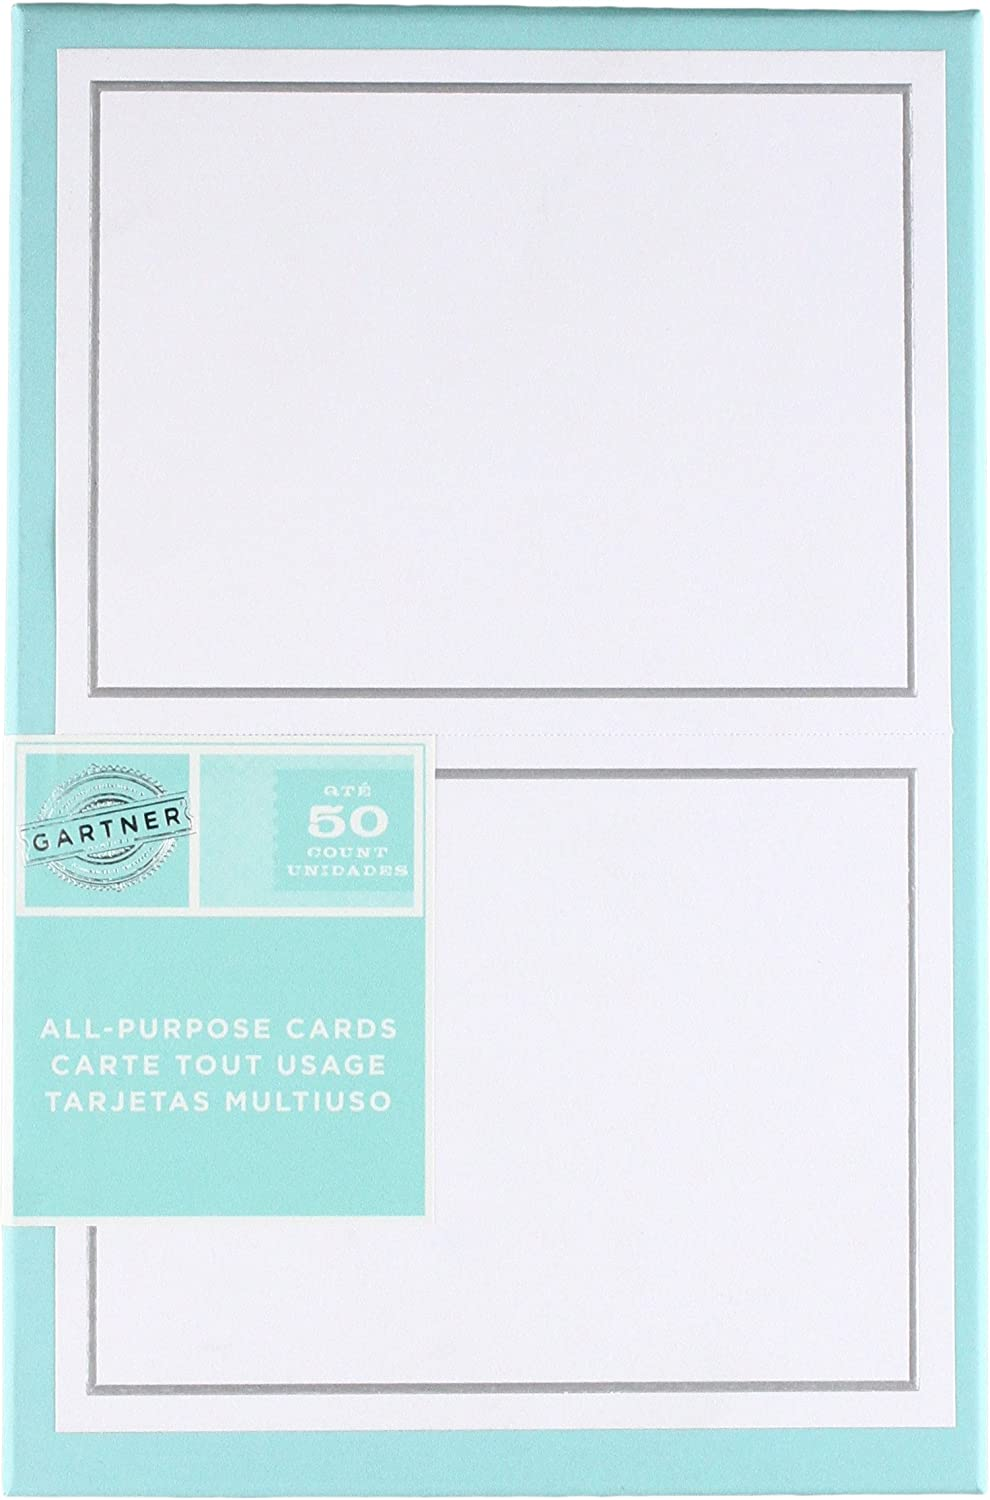 Gartner Studios Silver Foil Border All Purpose Cards, Includes Envelopes, White and Platinum, 4.25 by 5.5 Inches, 50 Count (60024)